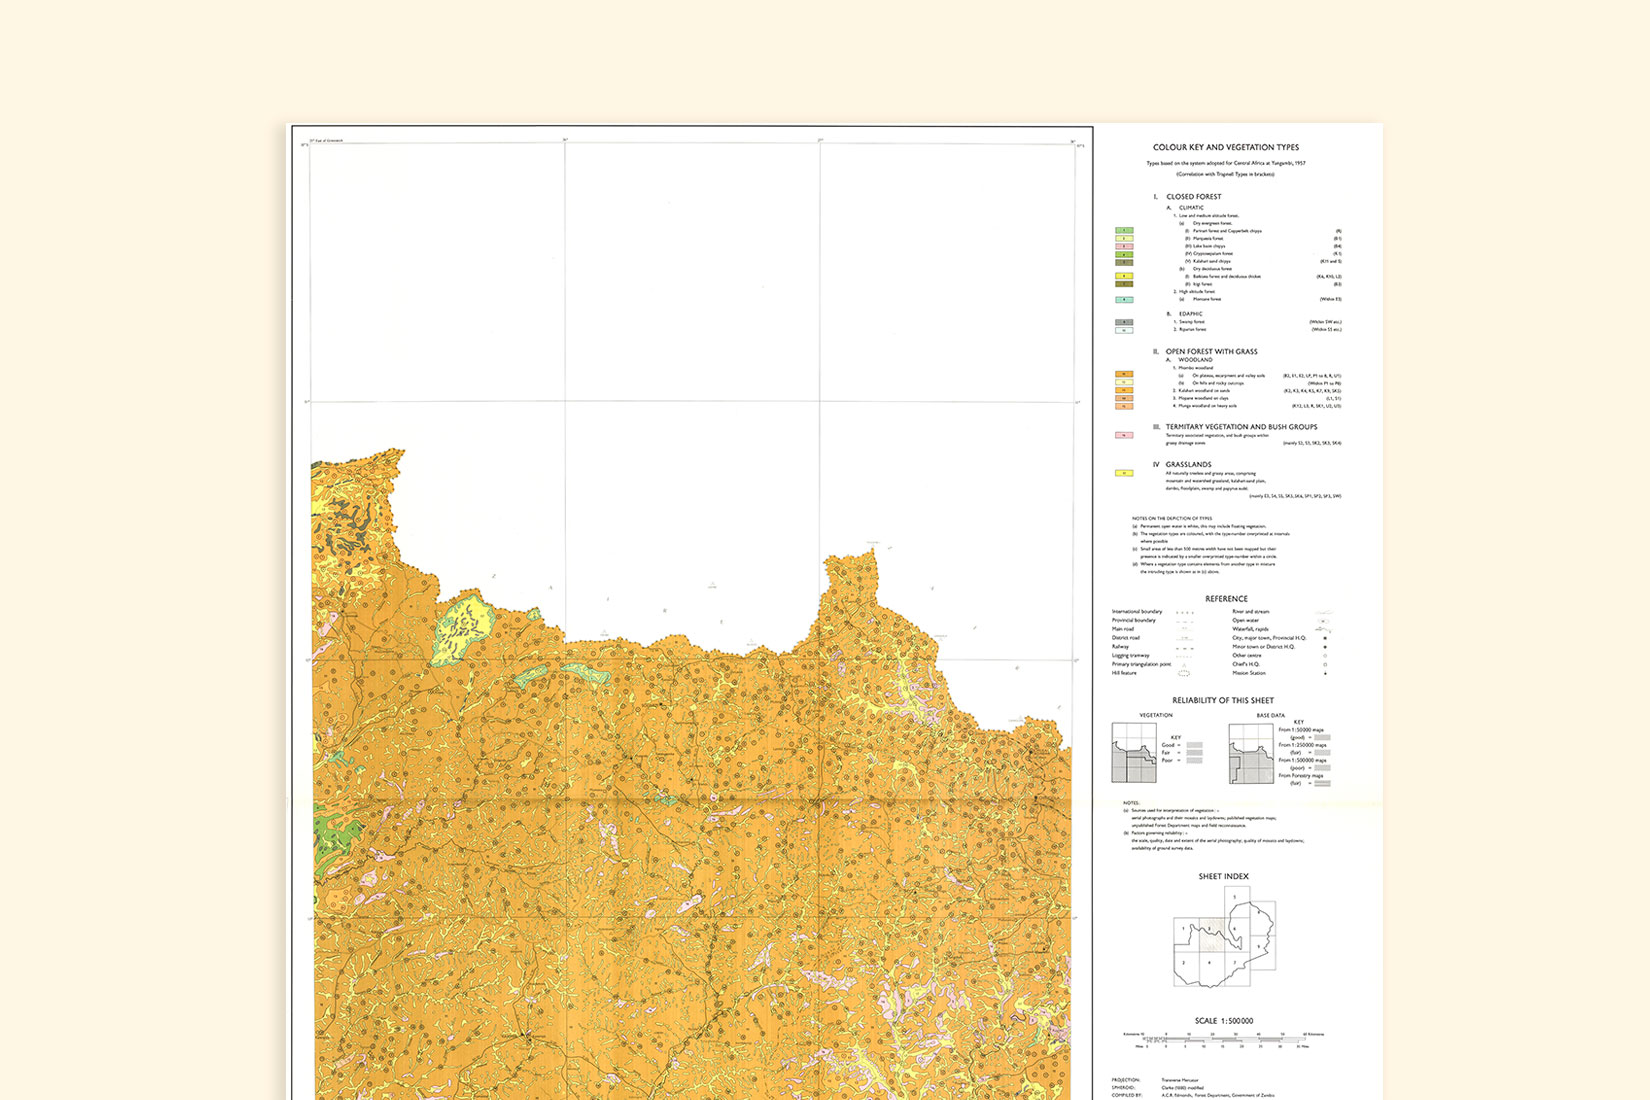 west_lunga_map